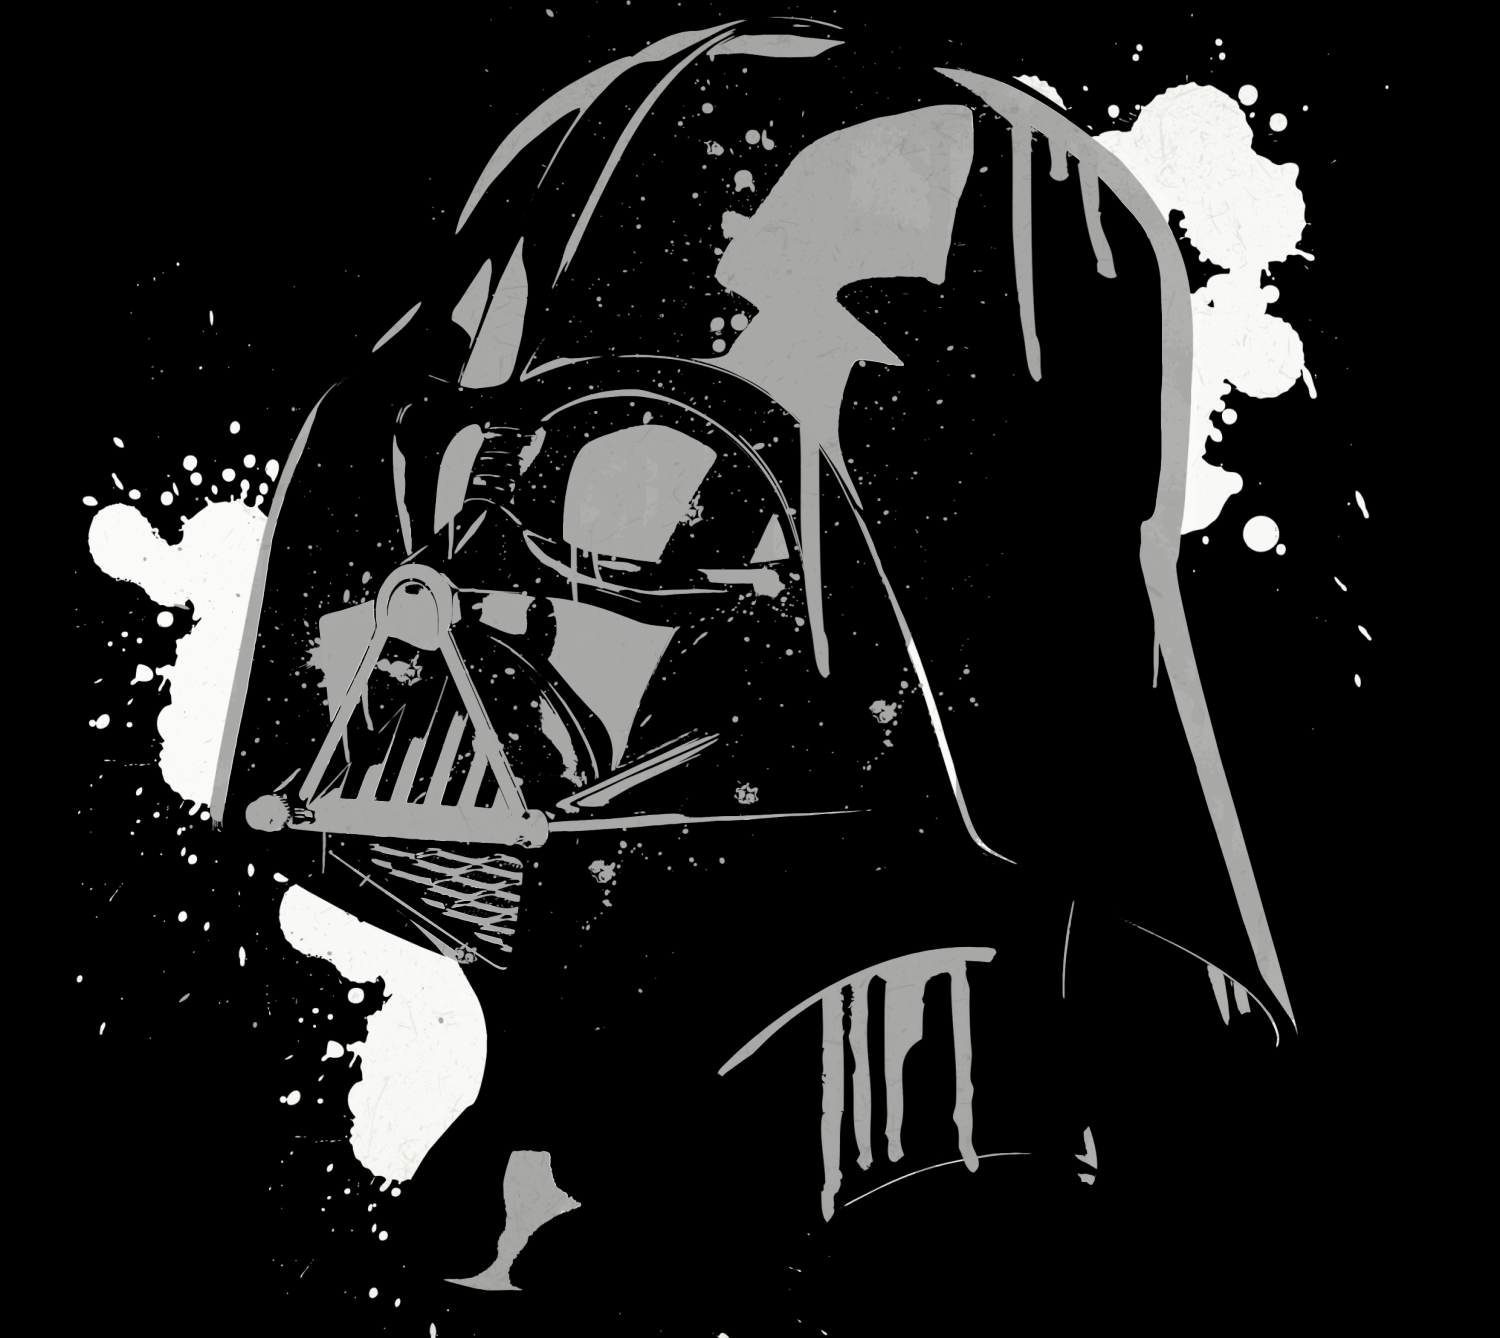 Is darth vader this character is in star wars supporting details darth